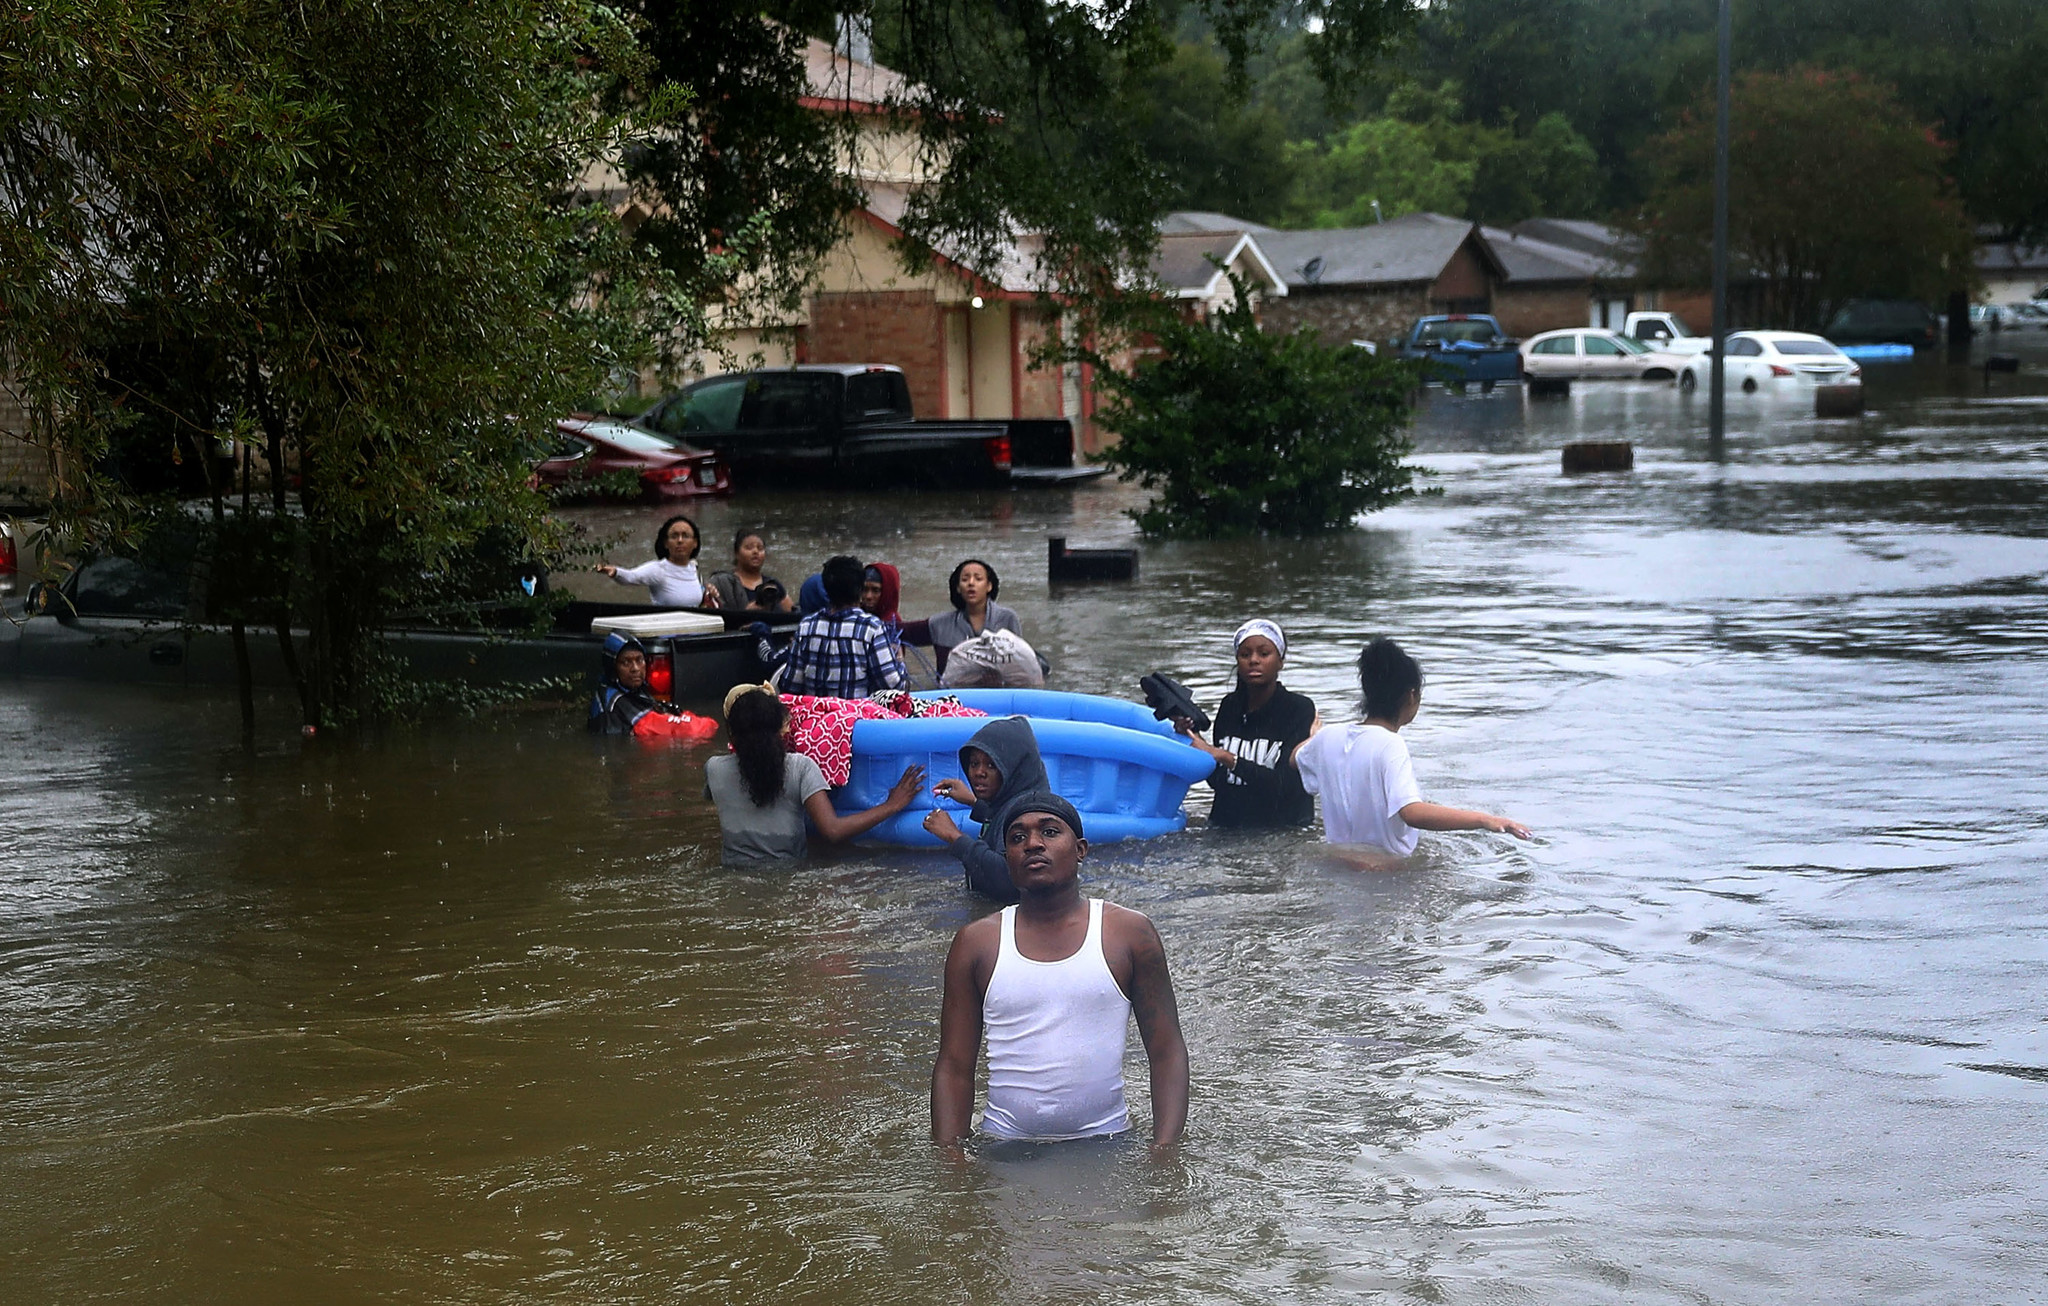 People wade through a flooded street in Houston.